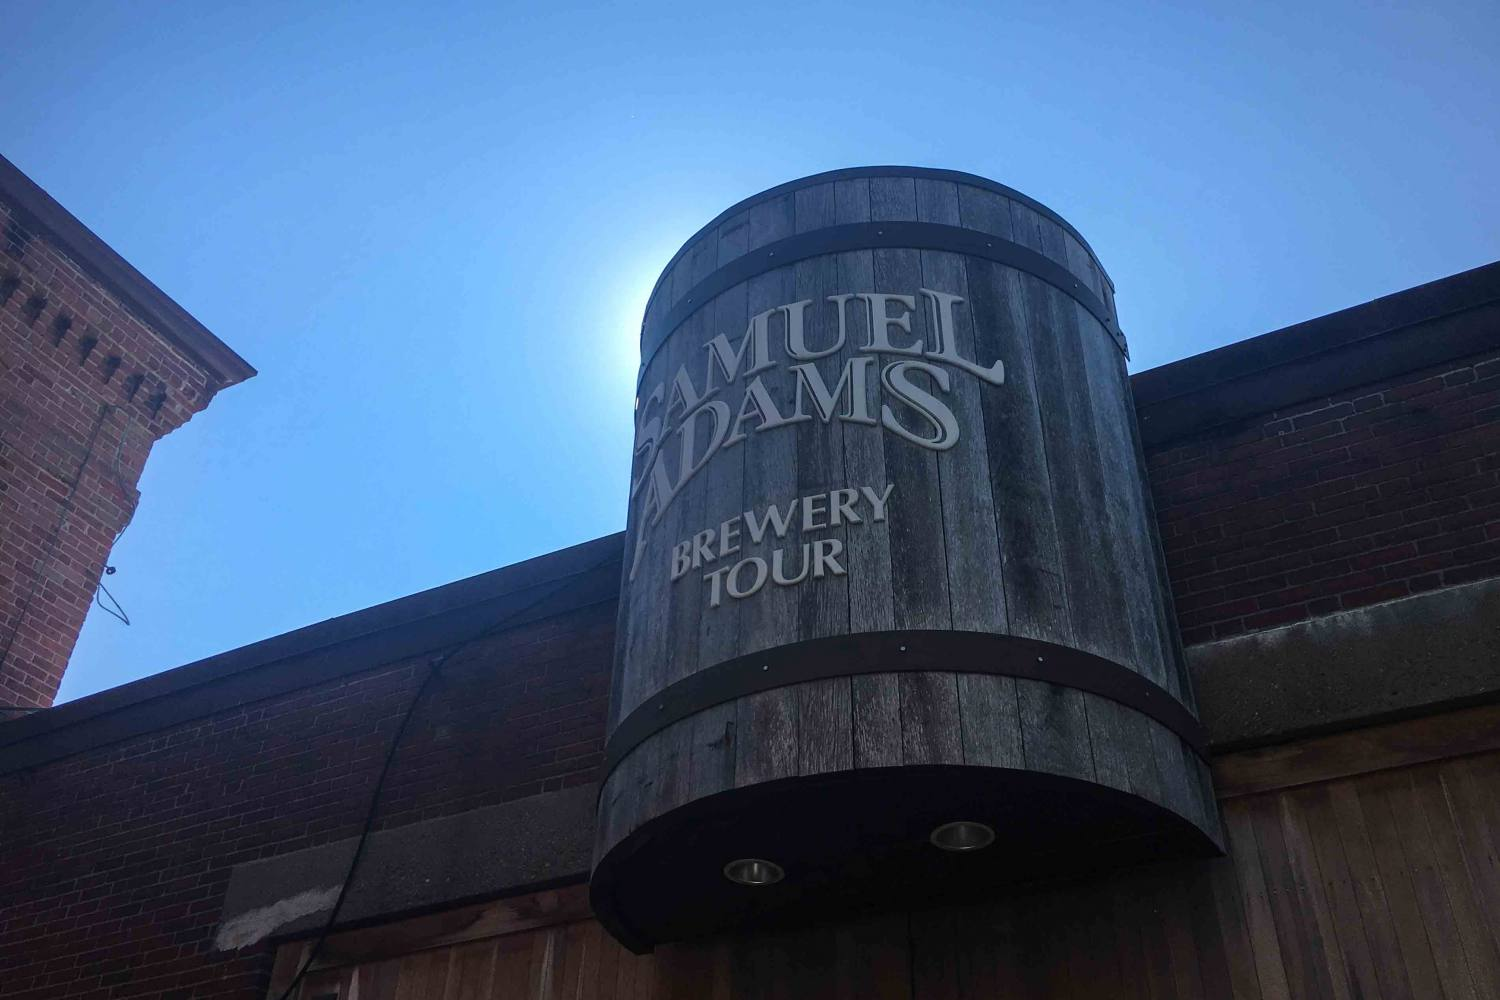 Boston, Massachusetts, has a great craft beer scene, with three popular breweries in the city proper: Sam Adams, Harpoon, and Trillium. Next time you travel to Boston, be sure to take a brewery tour, get free beer samples, or pick up some small-batch microbrews.